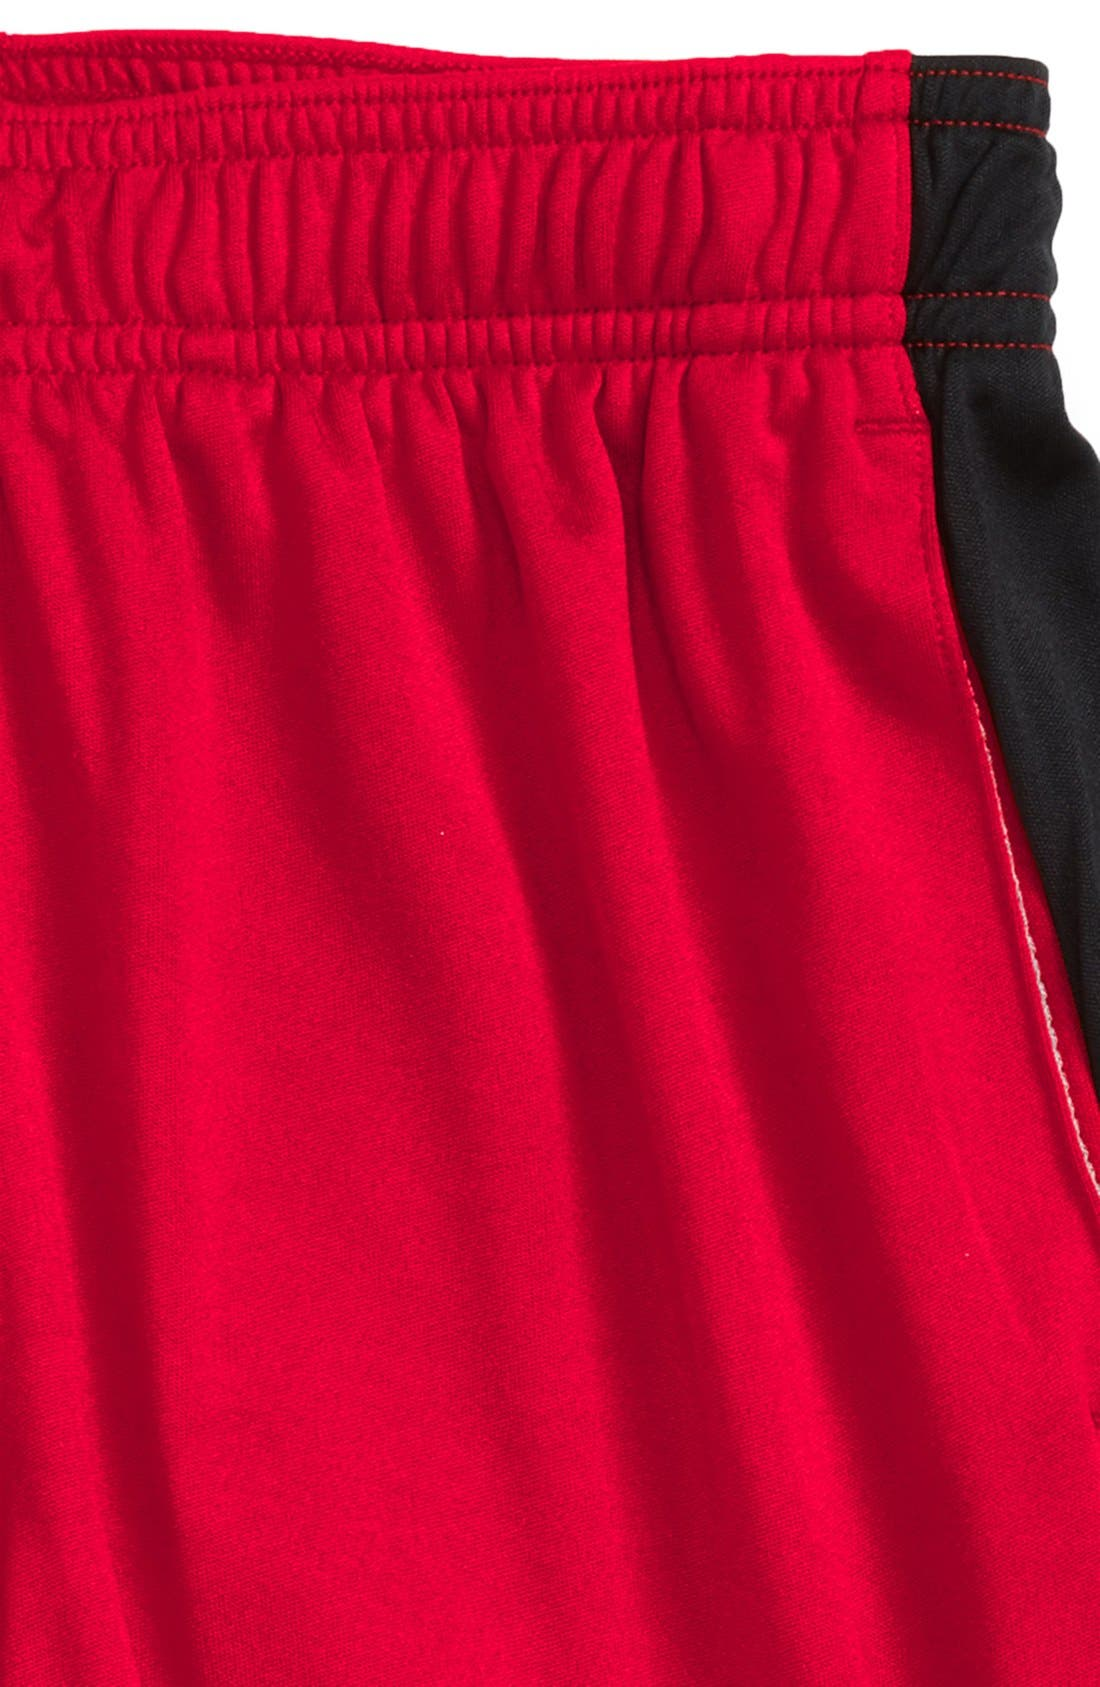 'Eliminator' HeatGear<sup>®</sup> Shorts,                             Alternate thumbnail 2, color,                             Red/ Black/ Black